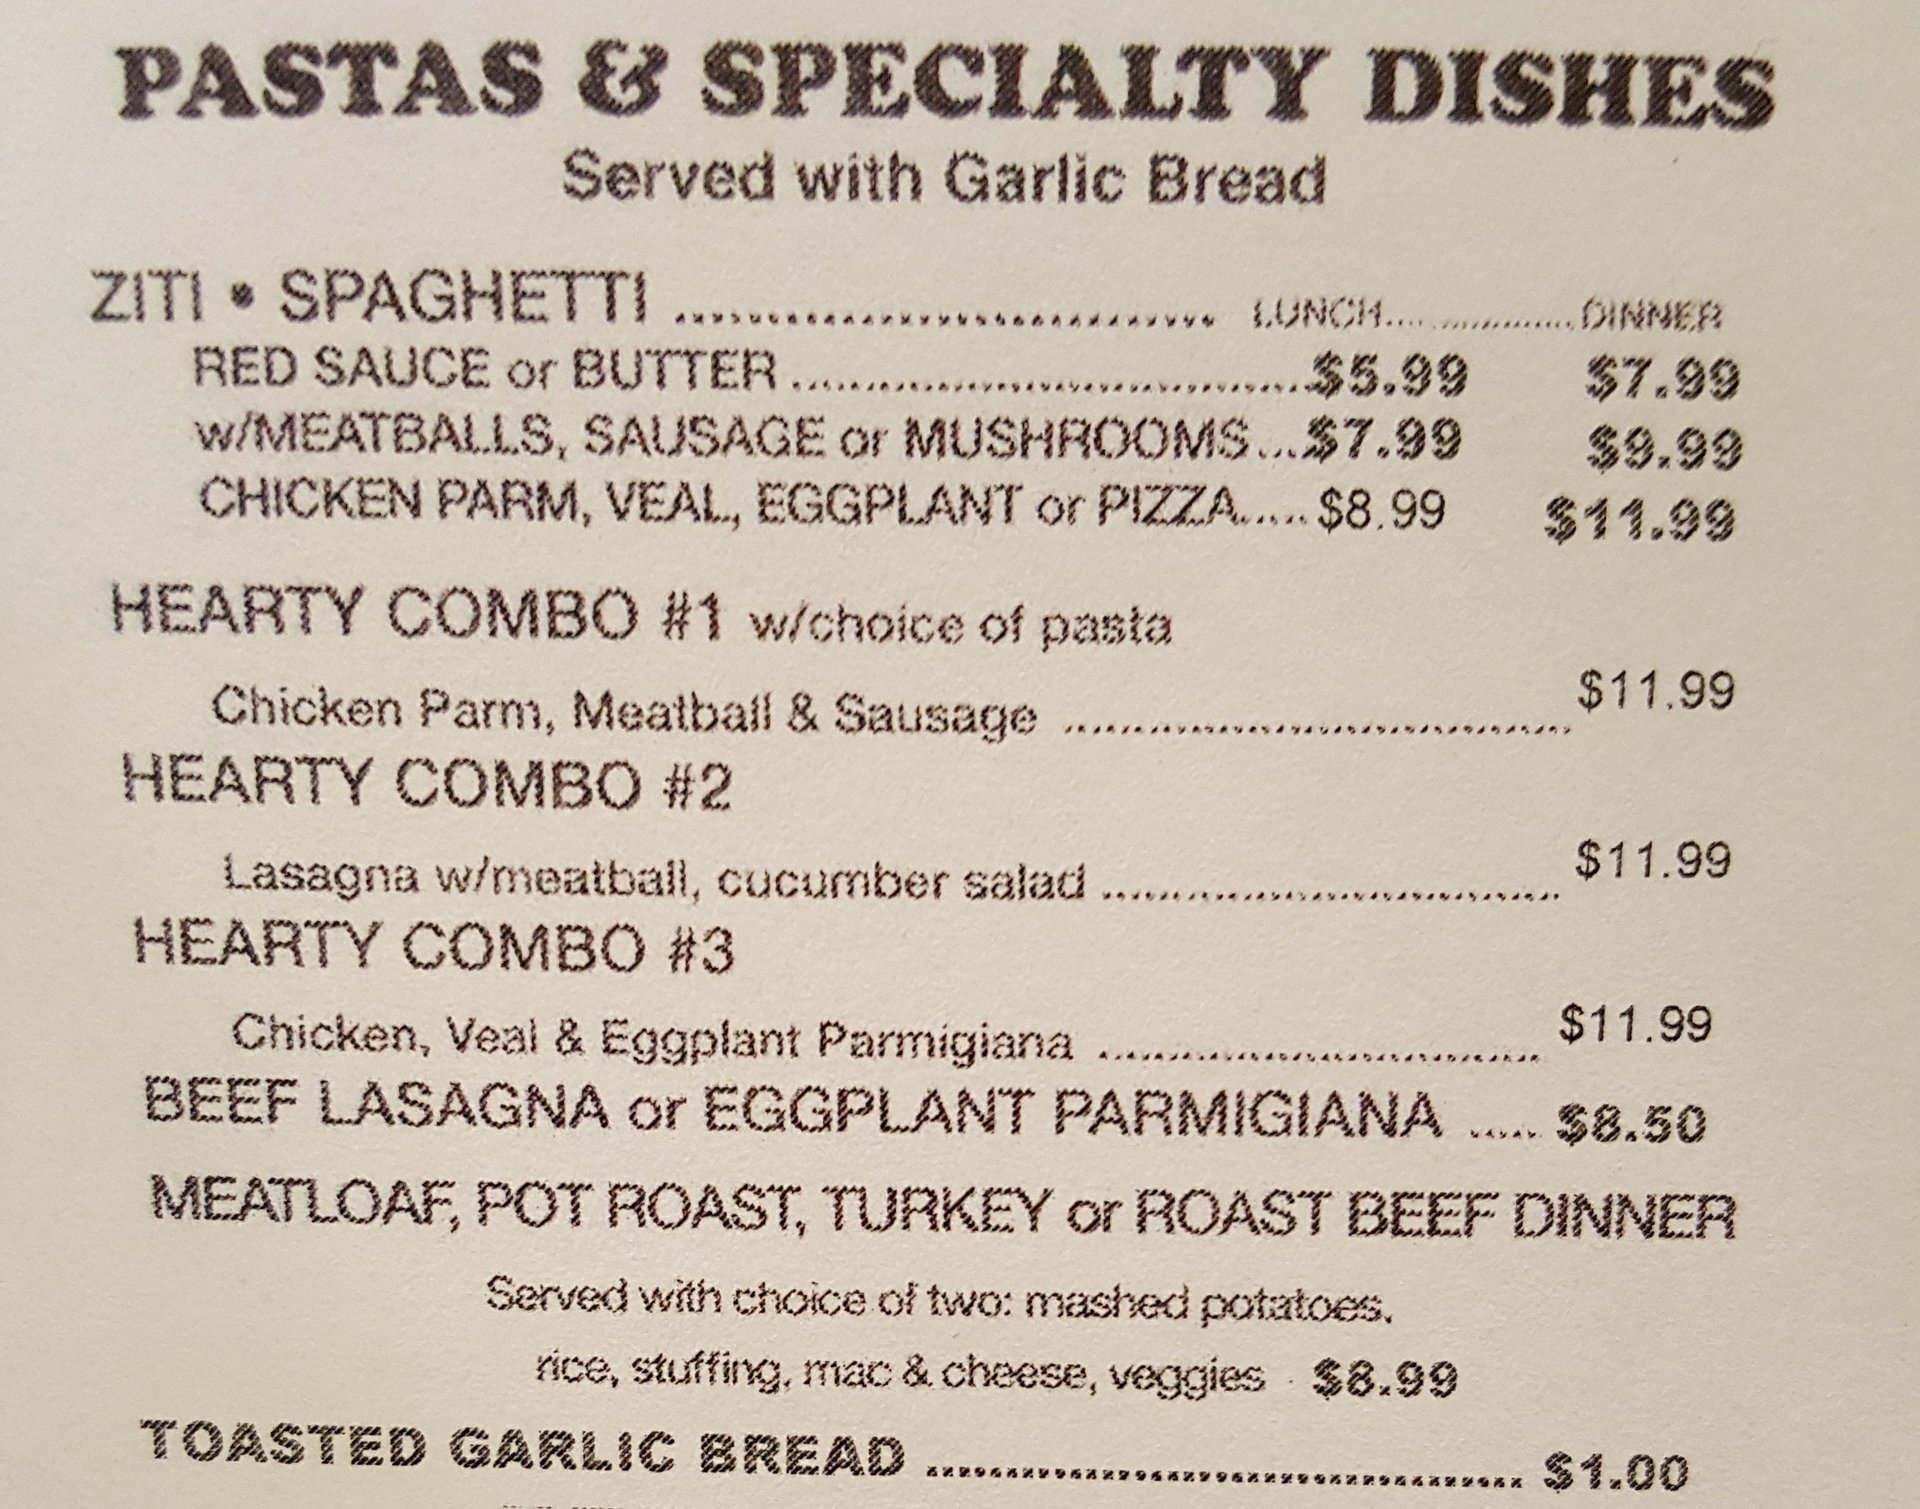 Pastas and Specialty Dishes